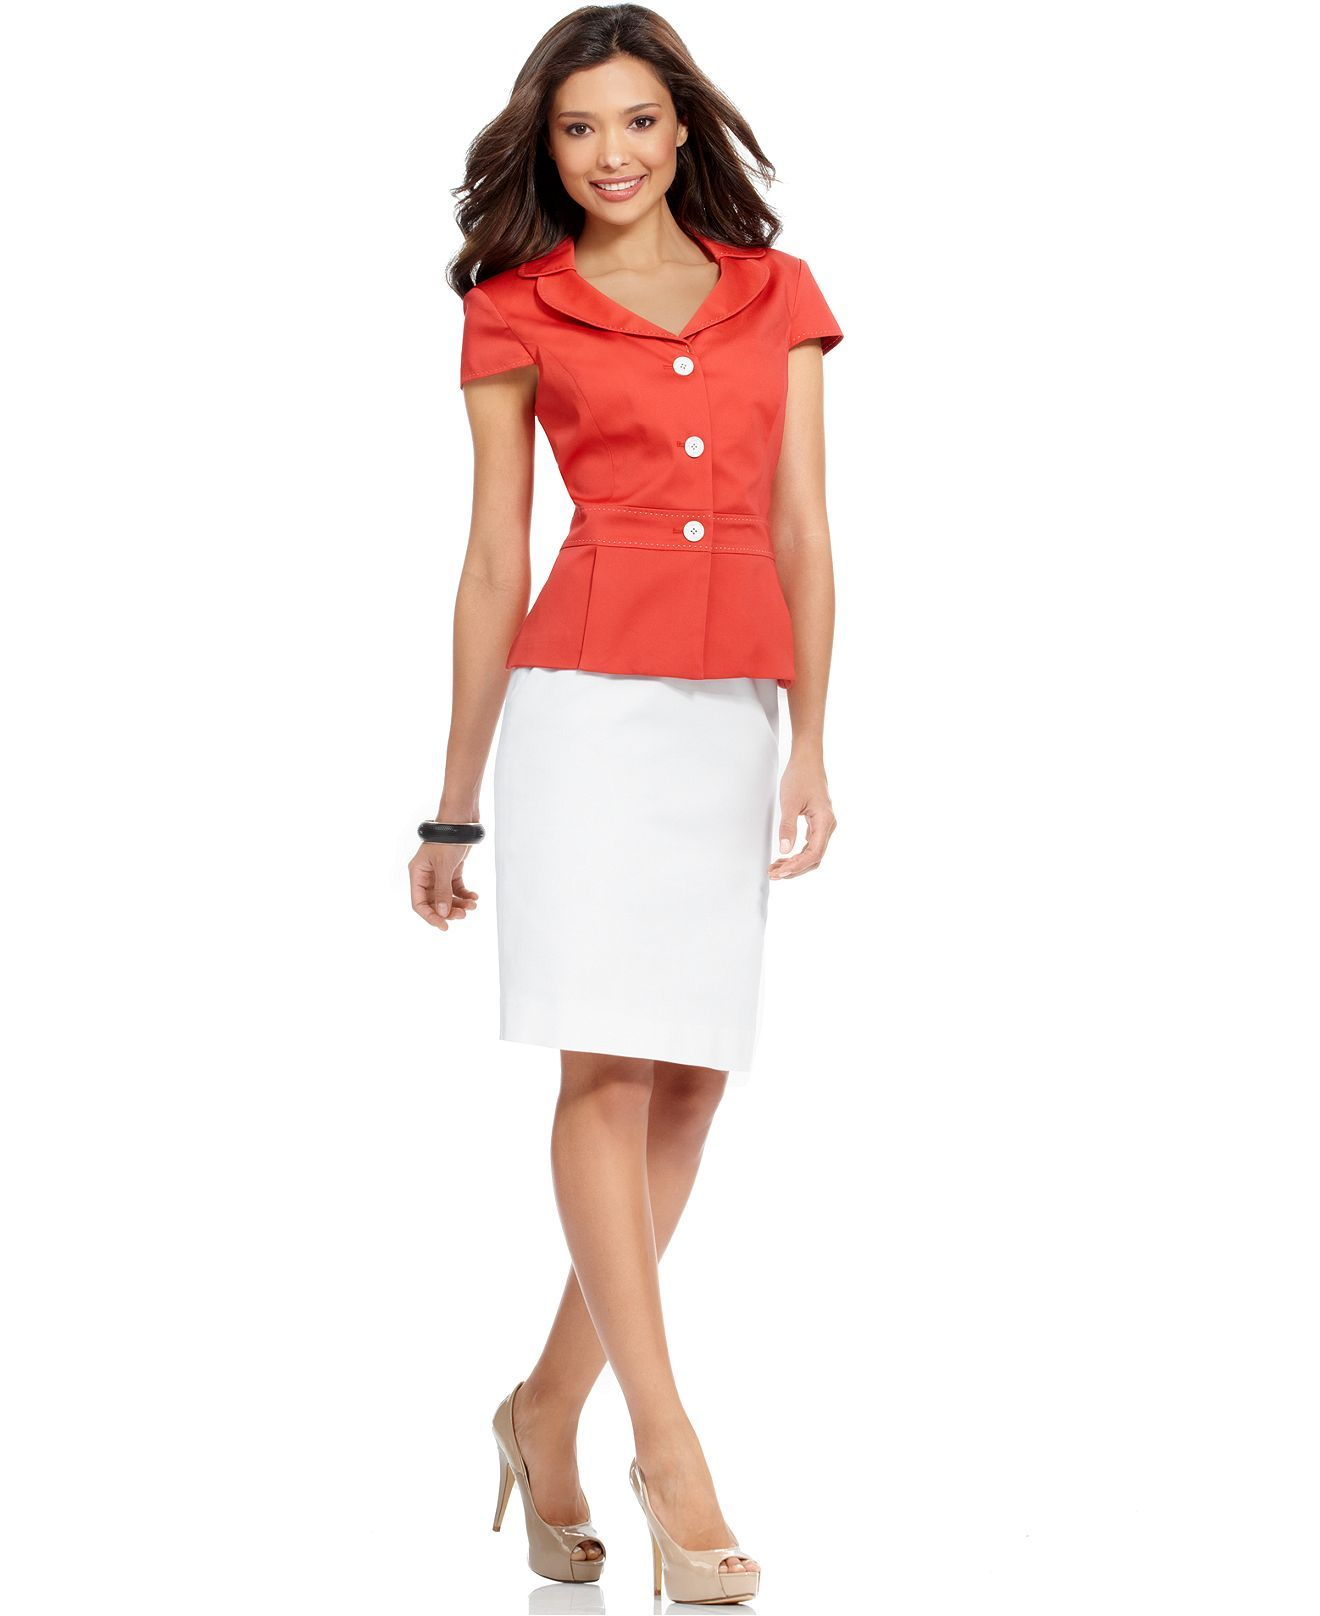 Calvin Klein Suit Short Sleeve Contrast Stitched Jacket Skirt